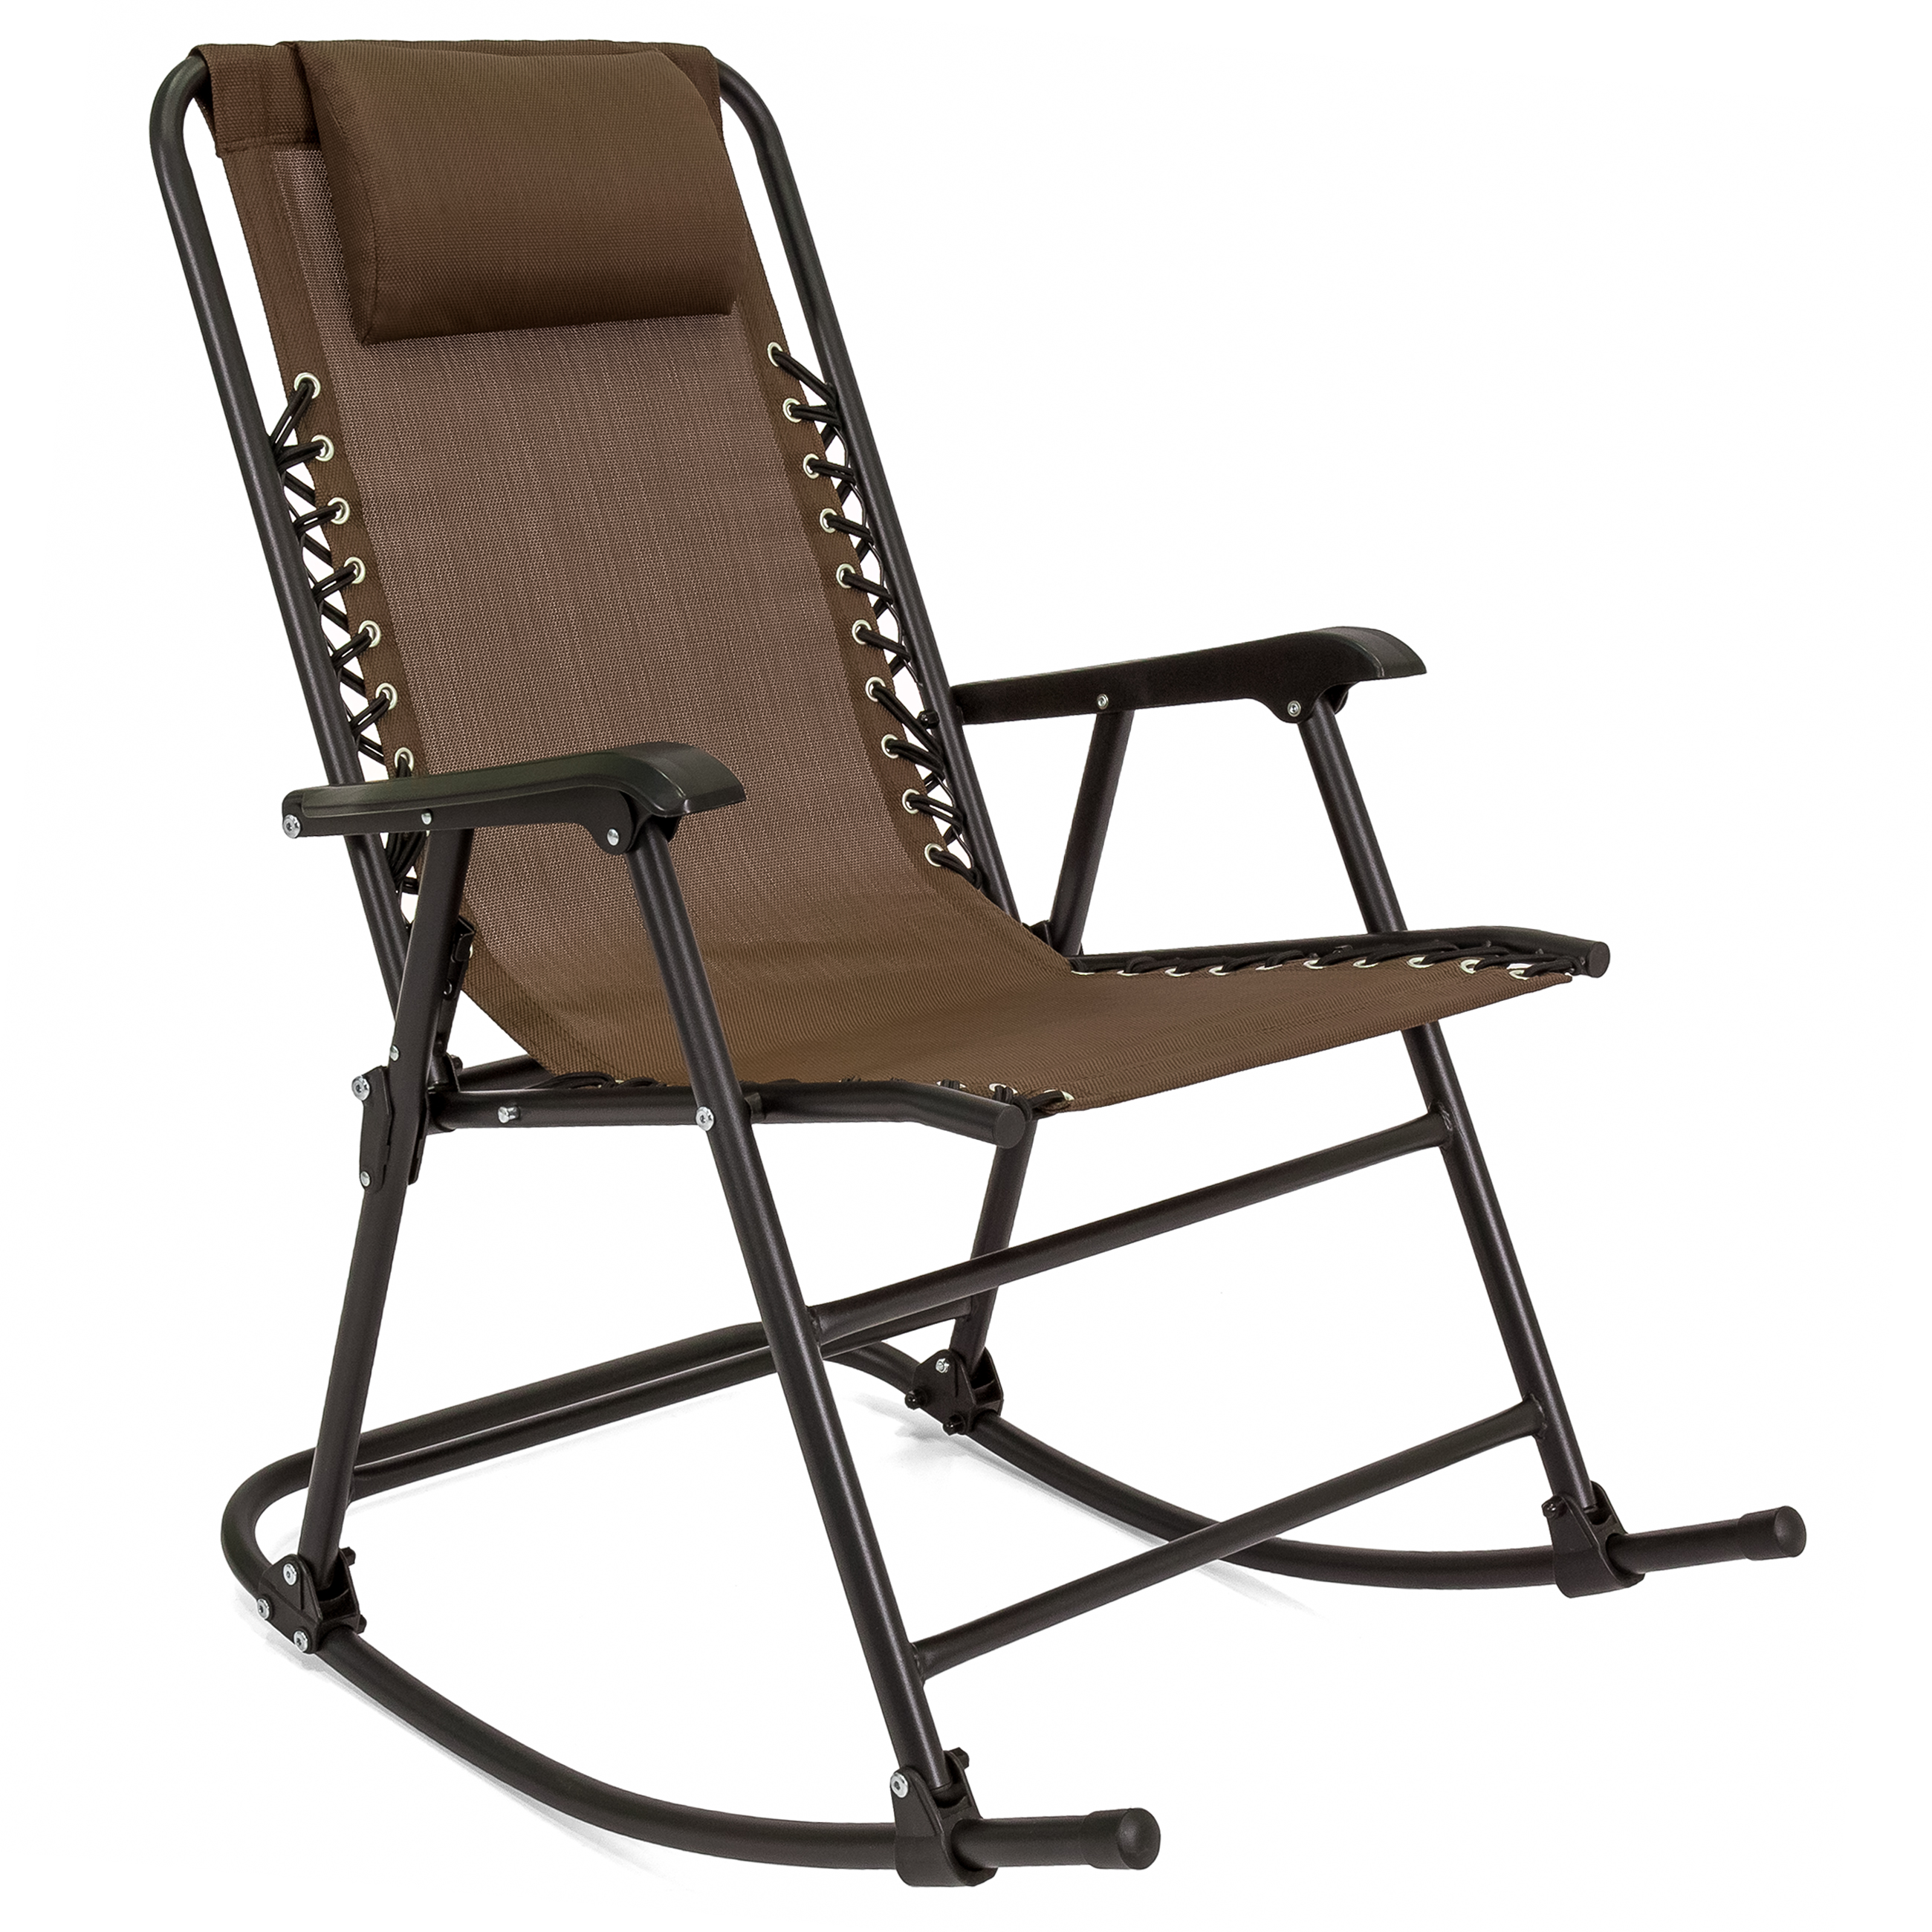 Recliner Rocking Chair Best Choice Products Foldable Zero Gravity Rocking Patio